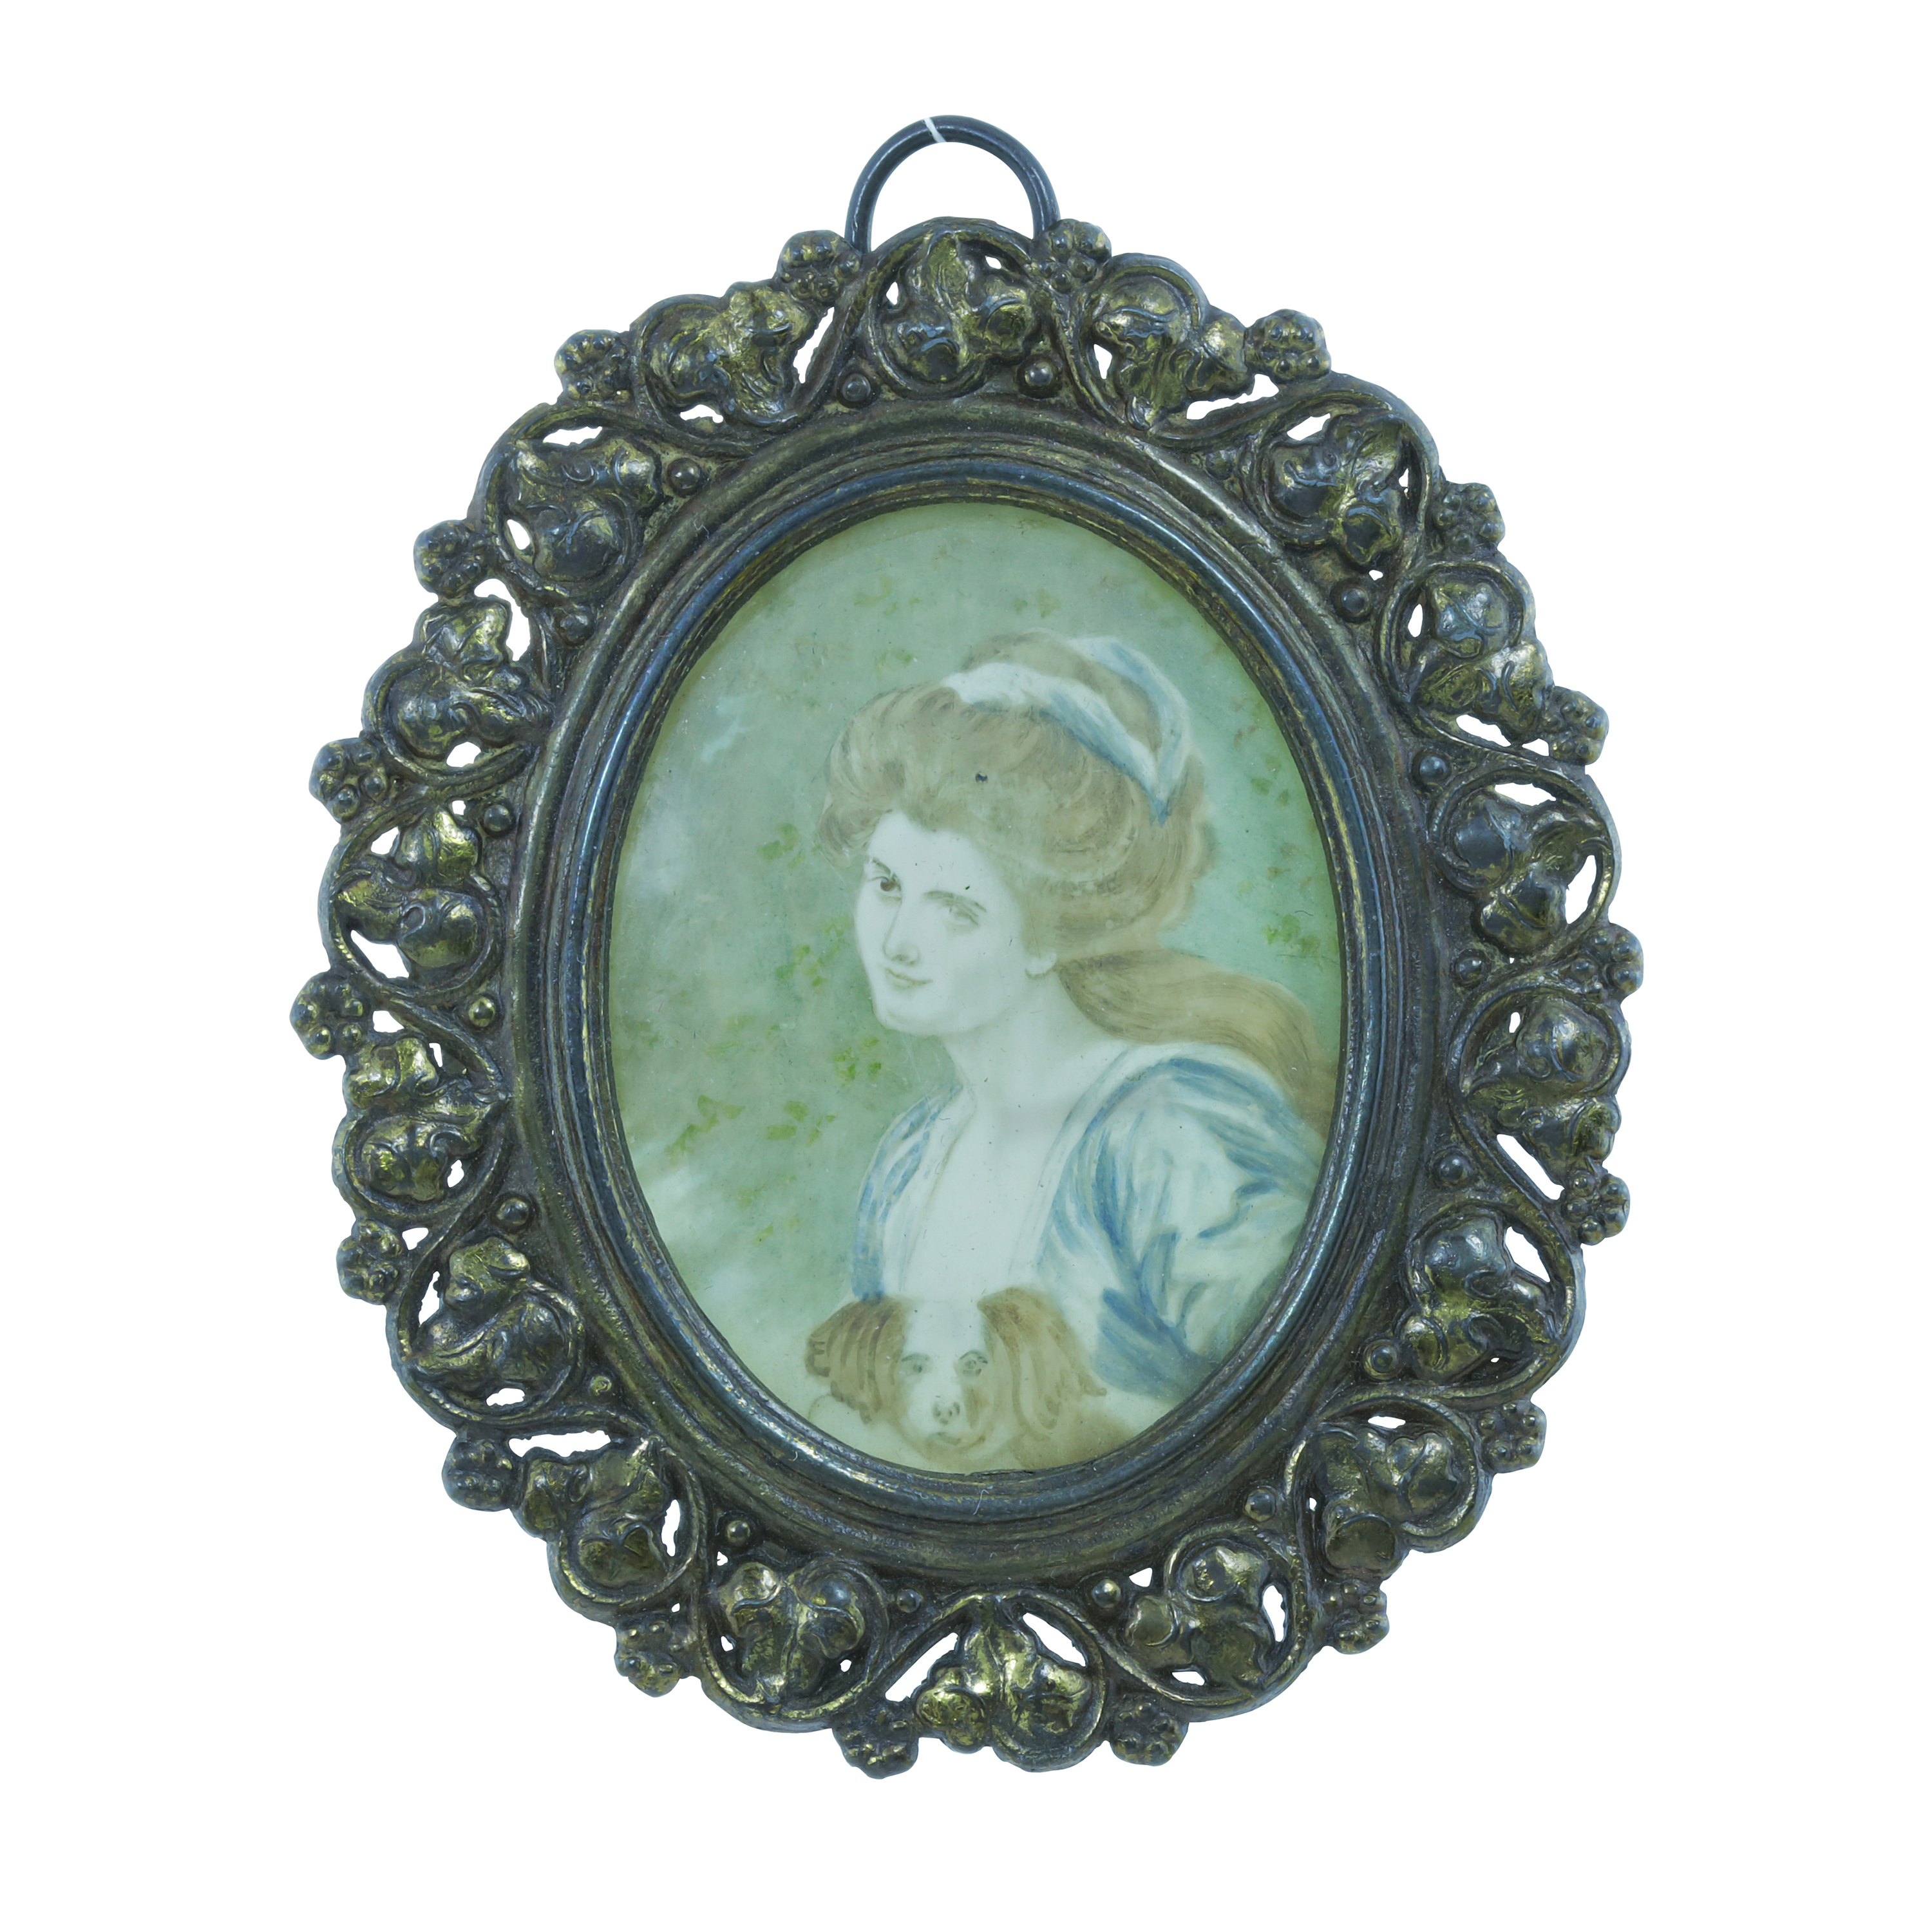 Los 454 - AN ANTIQUE PORTRAIT MINIATURE PENDANT of oval form, the painted miniature depicting a lady and